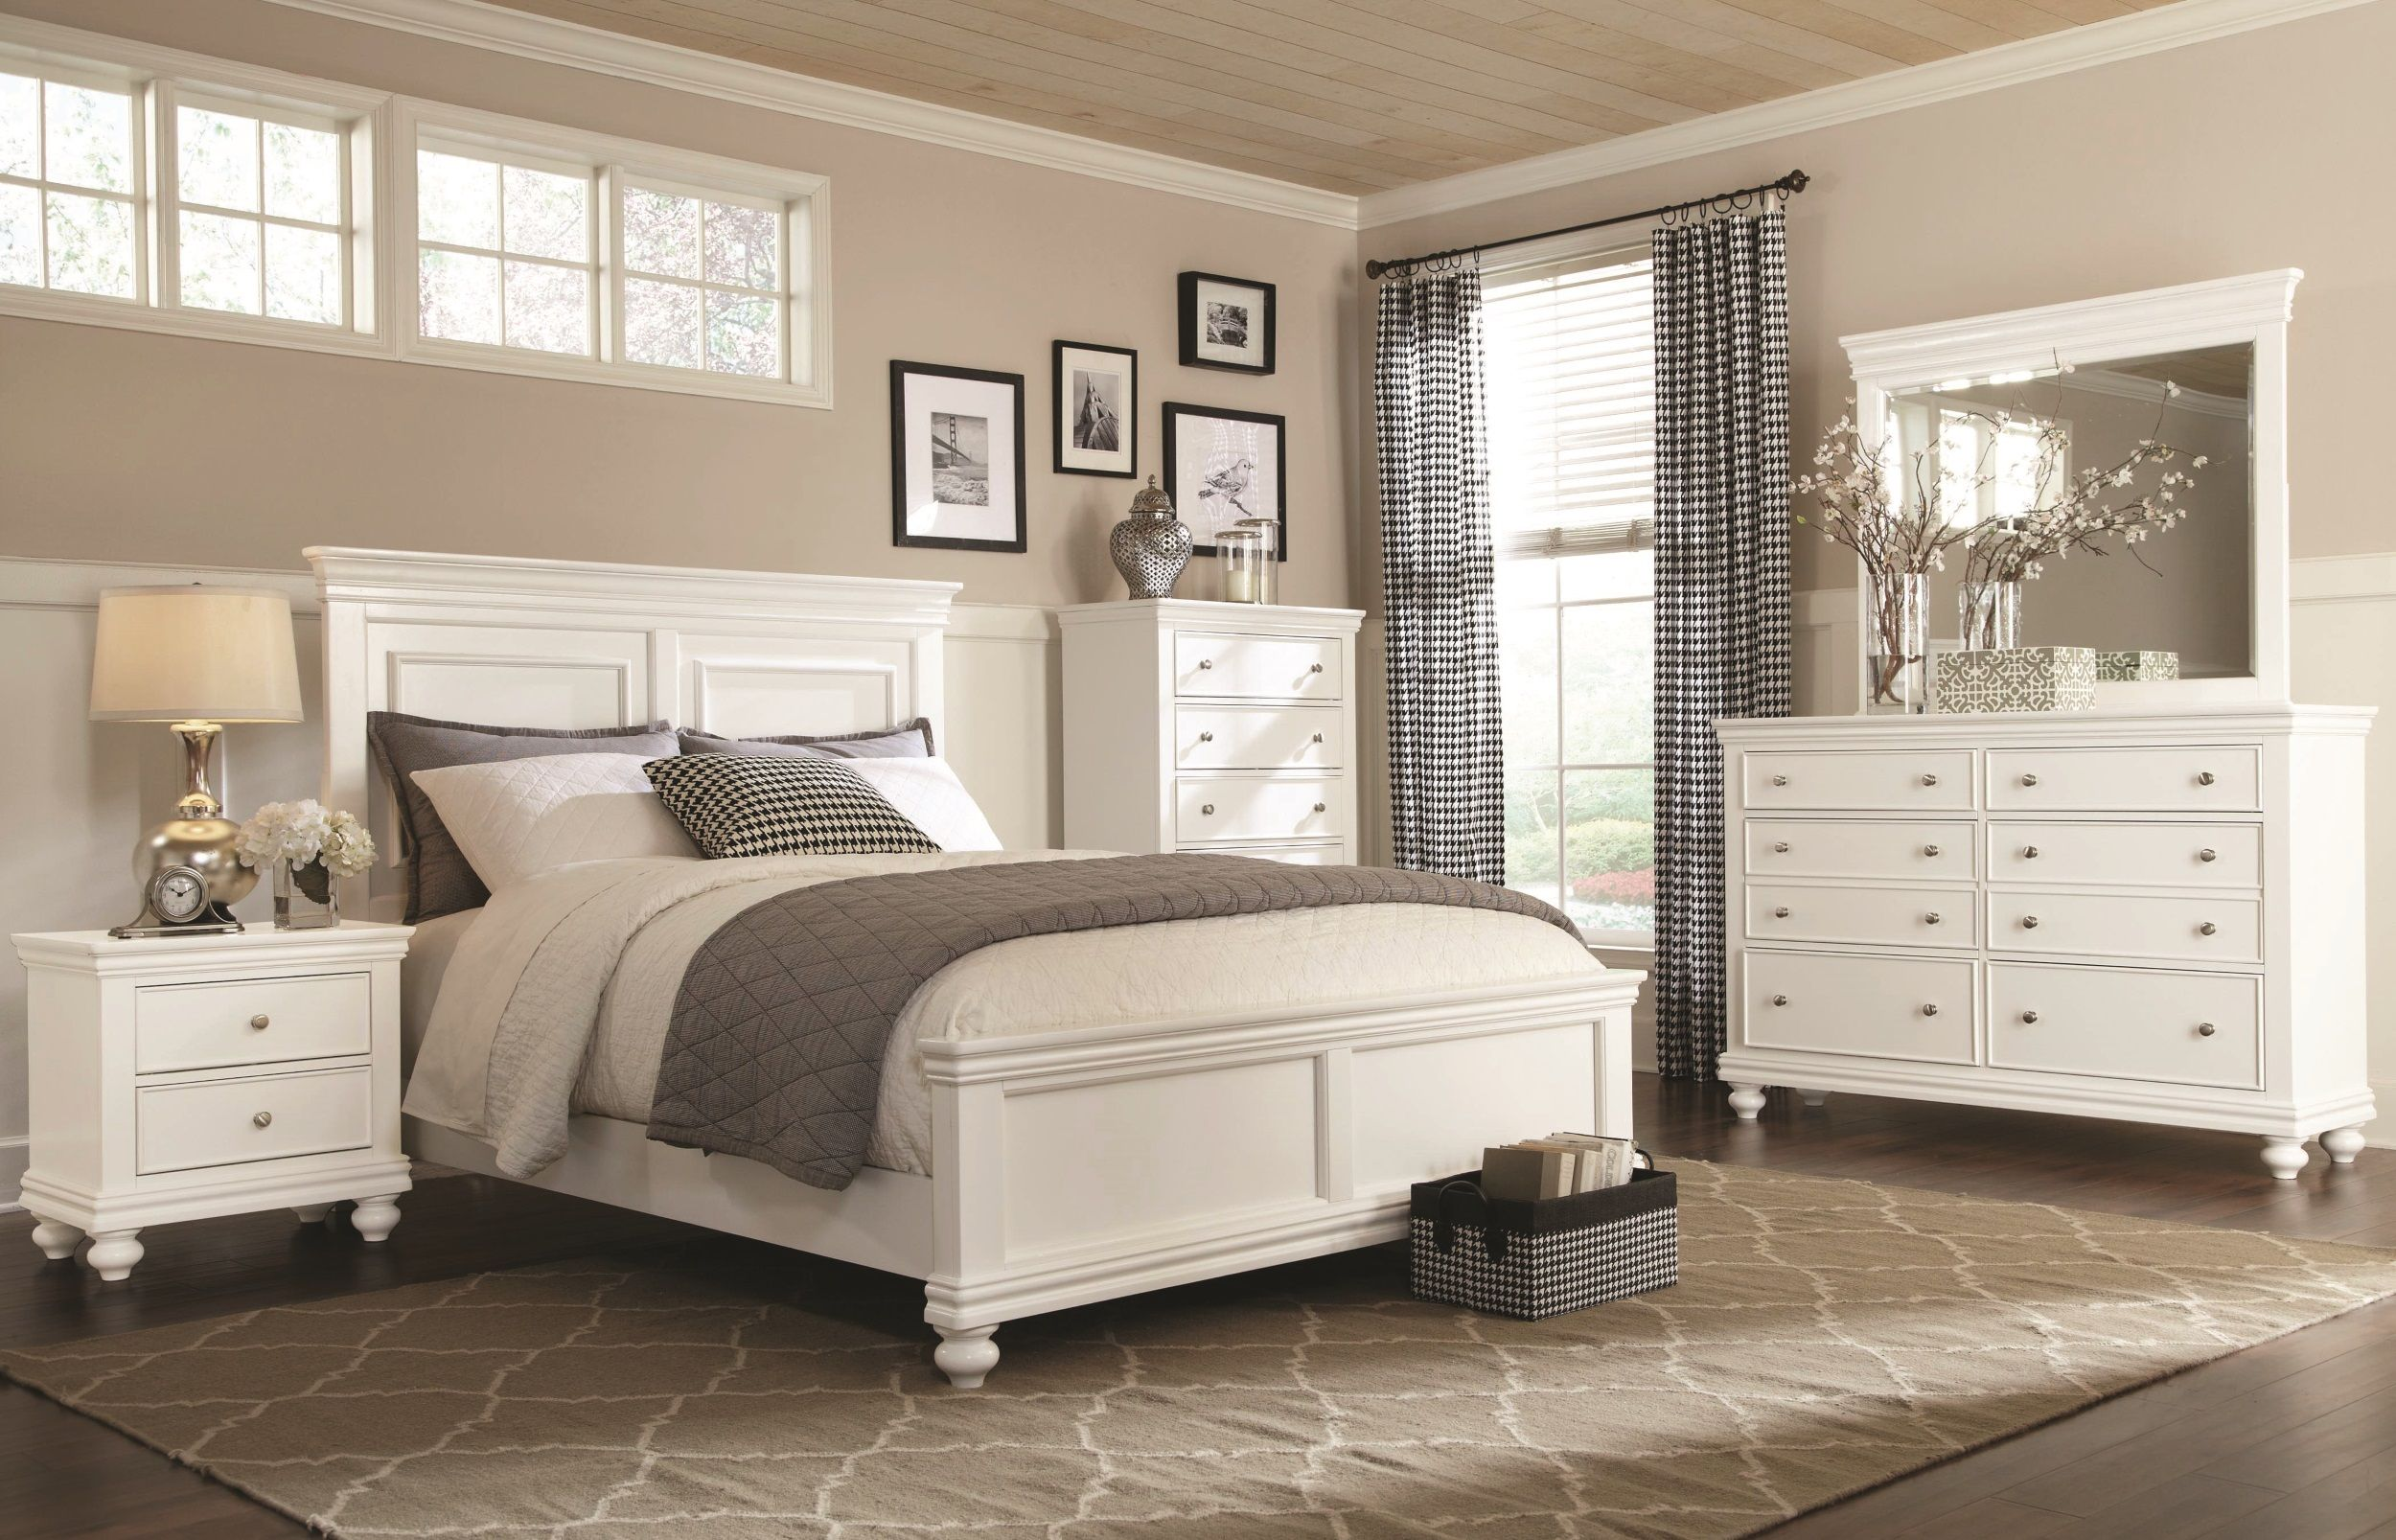 White 12 Piece Queen Bedroom Set - Essex  White bedroom set